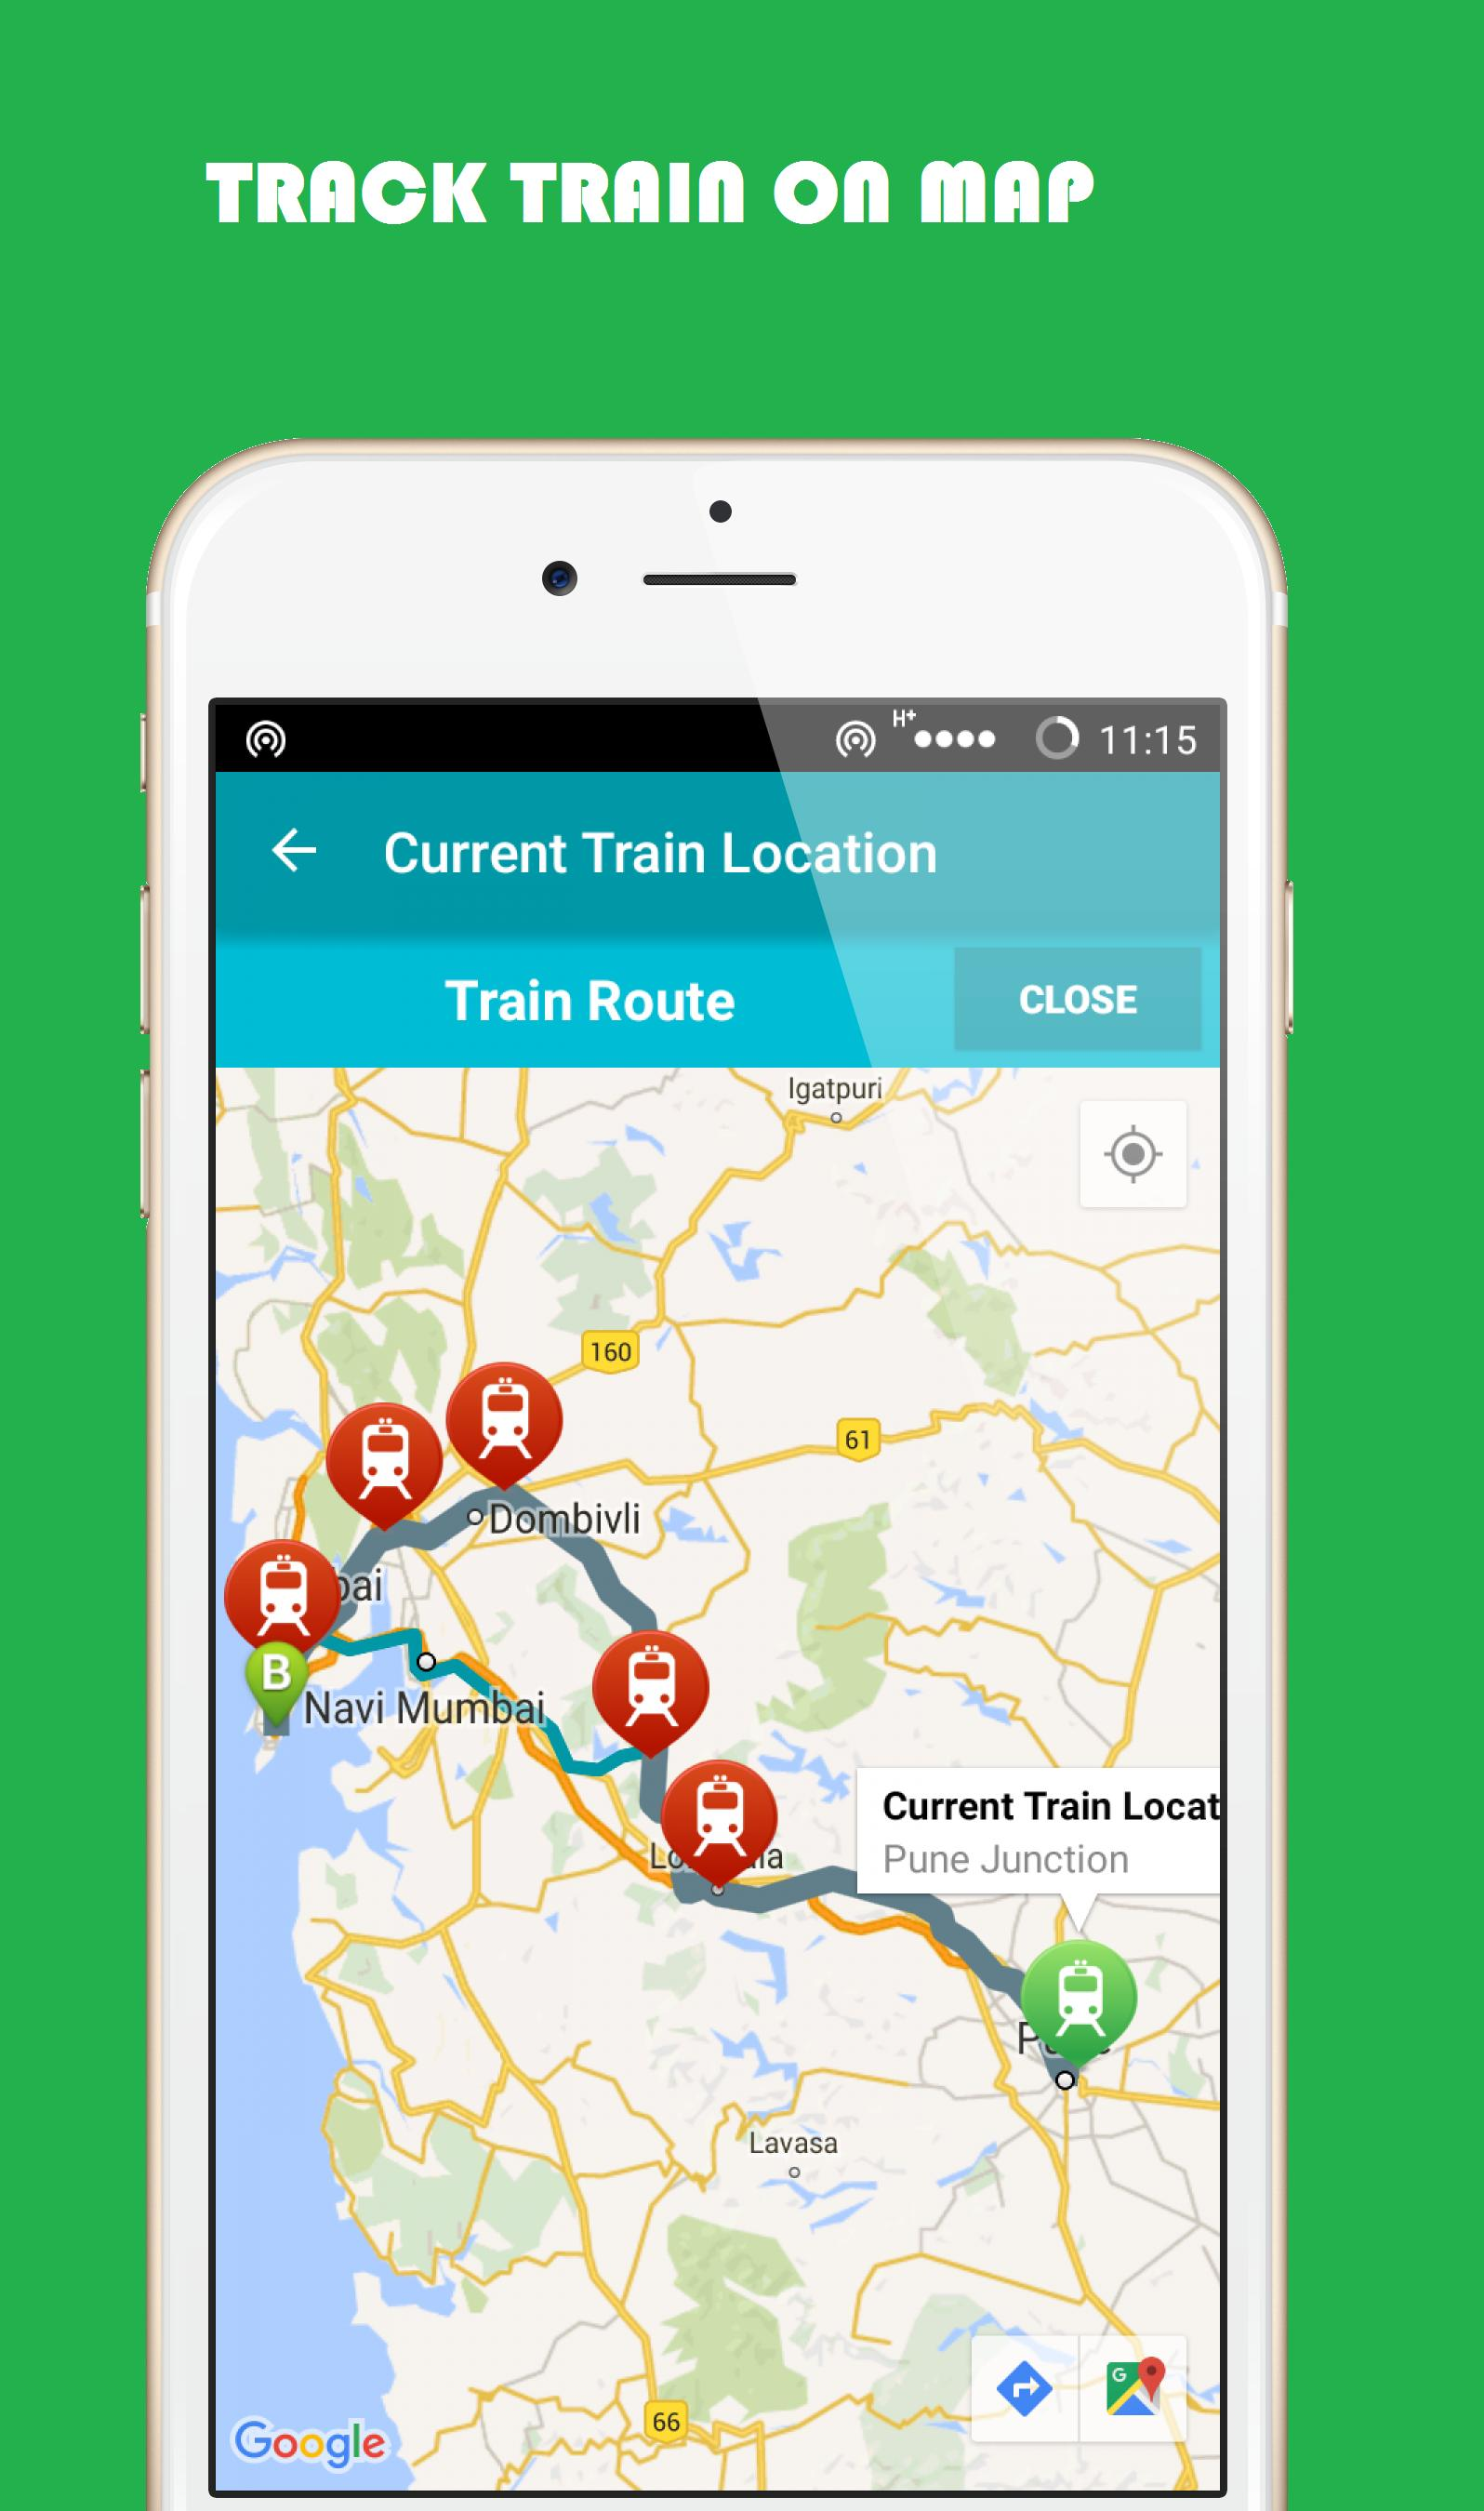 current location of train on map Track Live Train Map For Android Apk Download current location of train on map